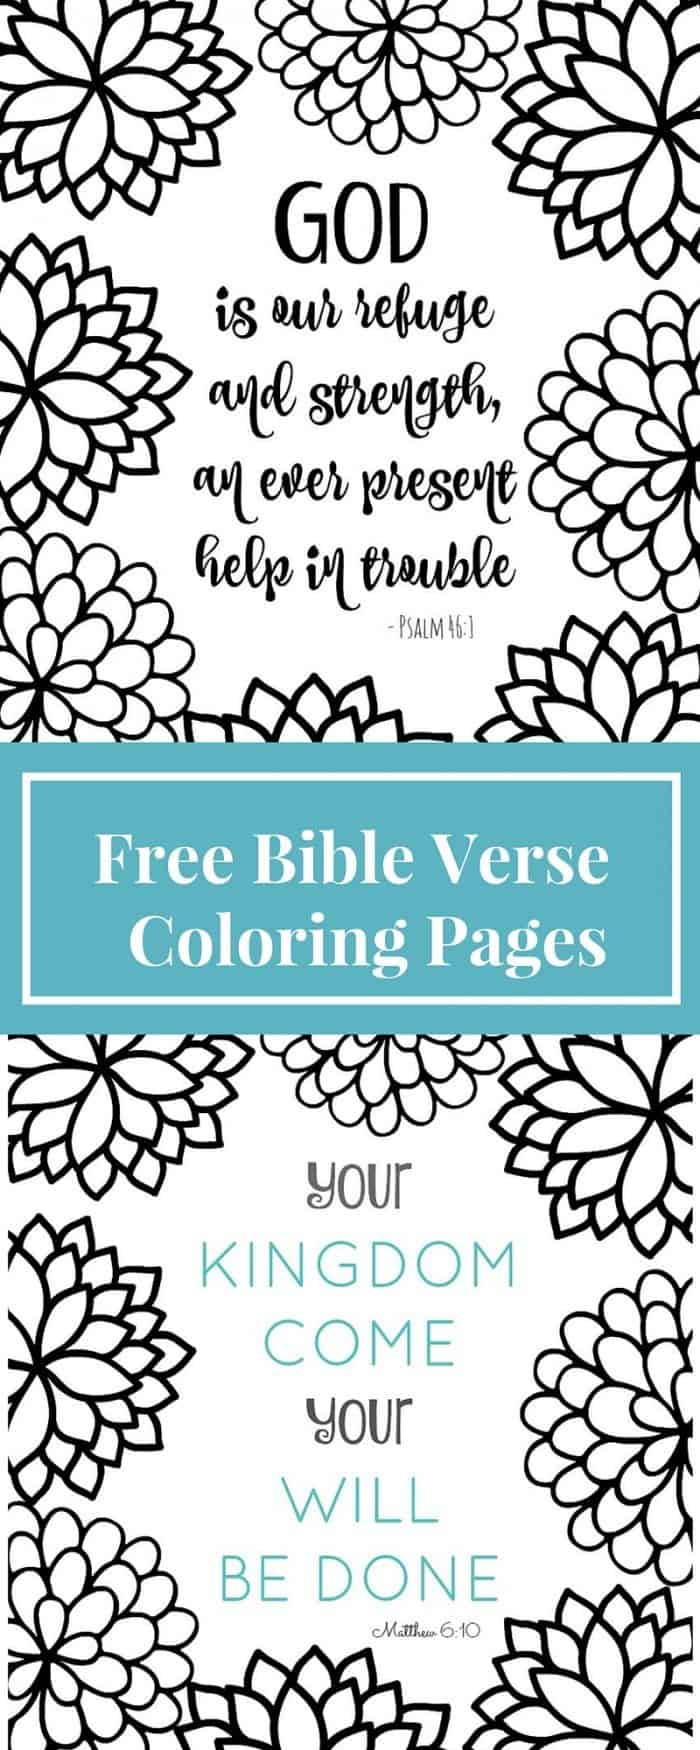 scripture coloring pages free - photo #1